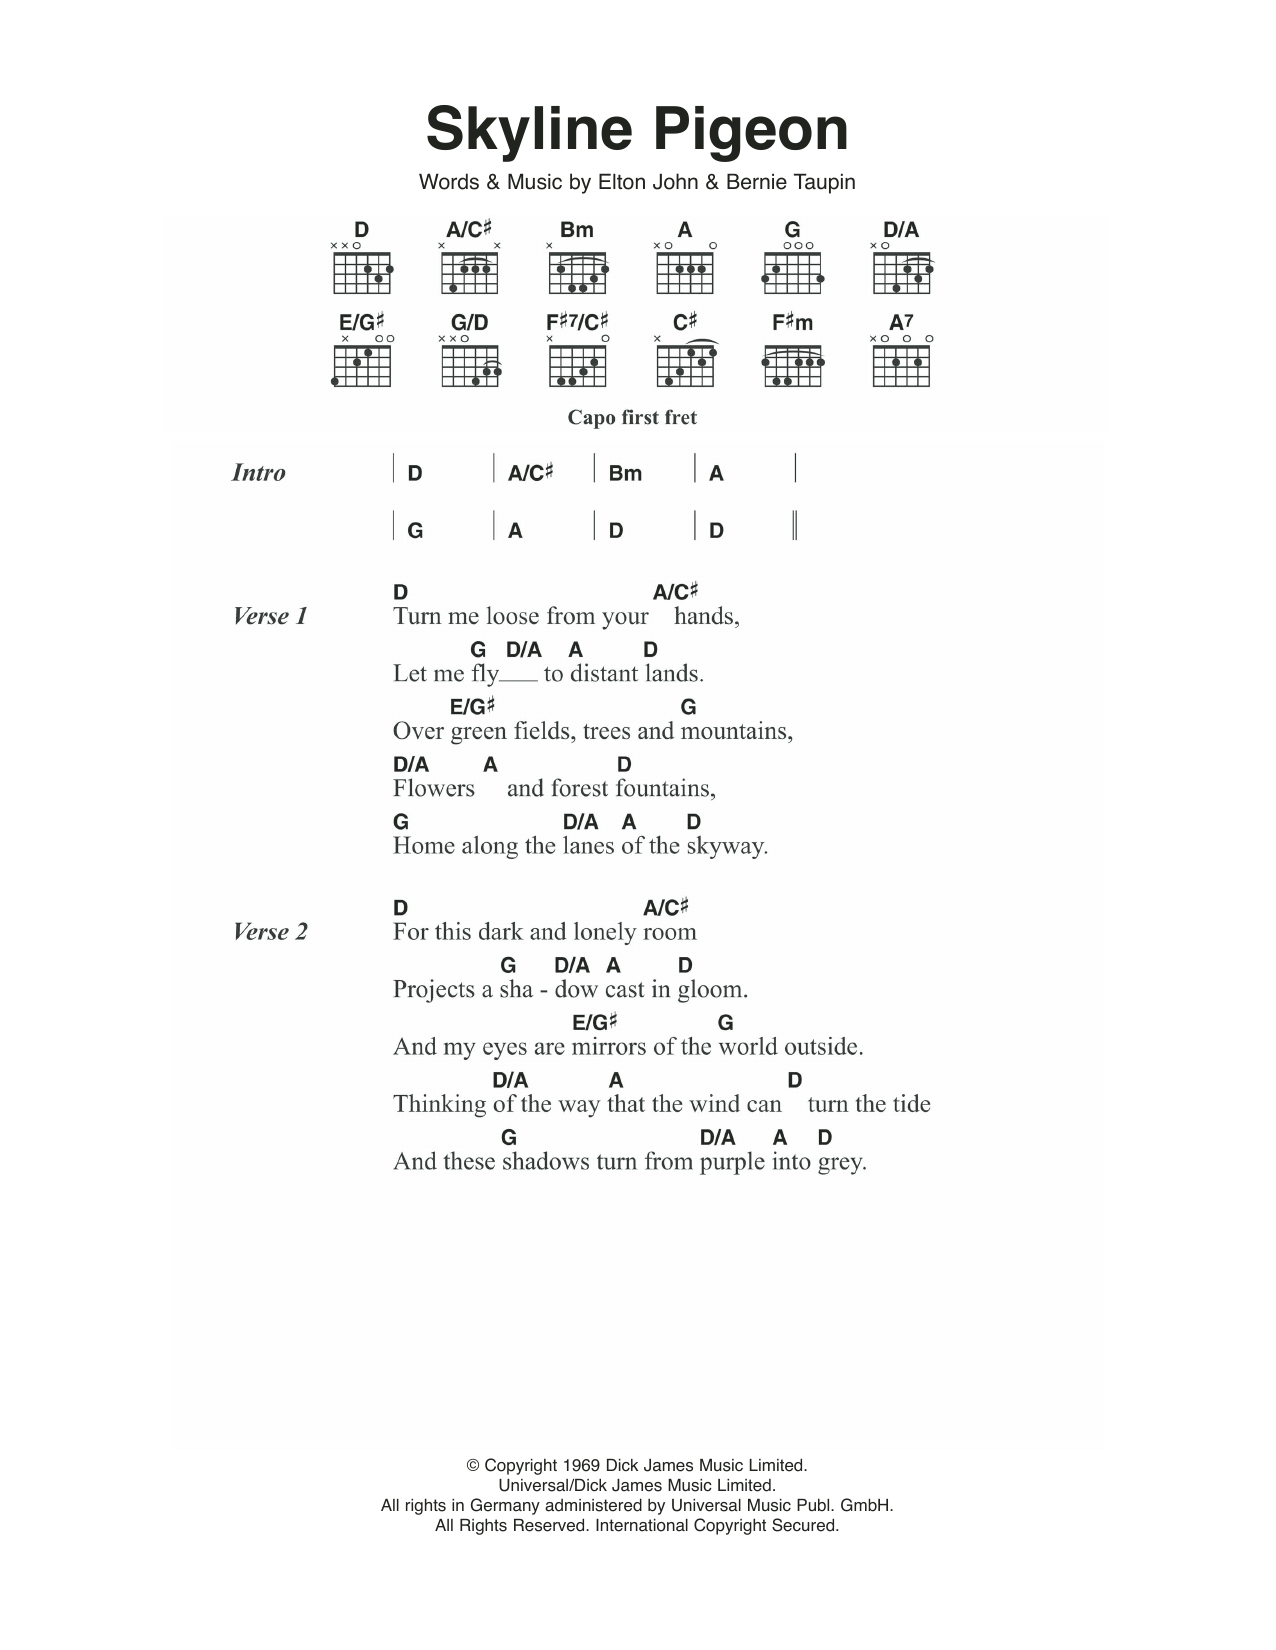 Skyline Pigeon by Elton John Guitar Chords/Lyrics Digital Sheet Music